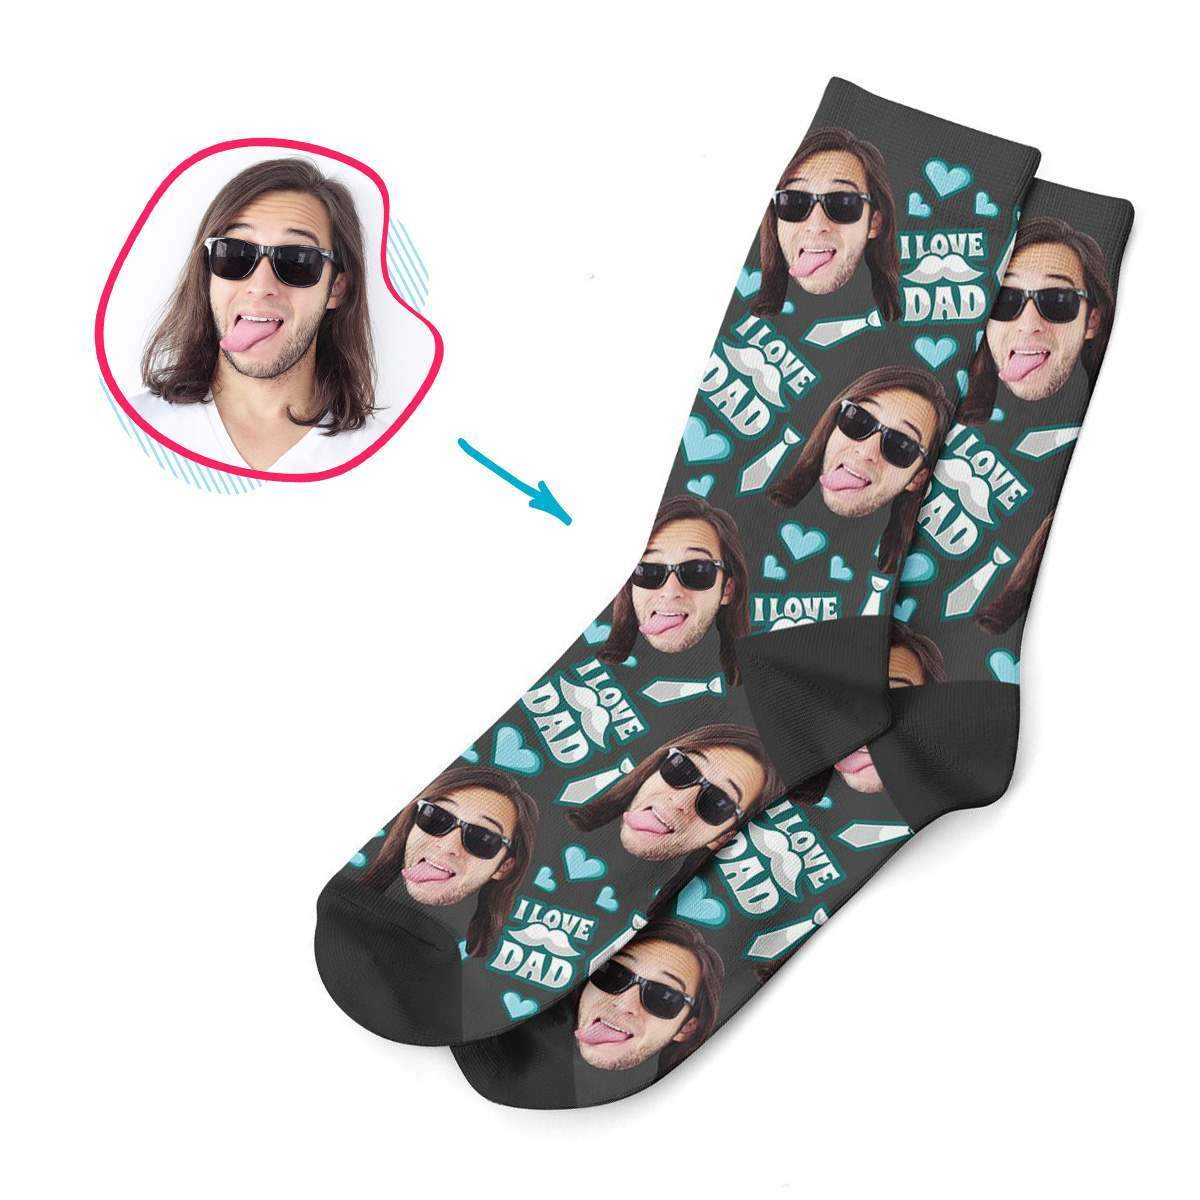 dark Love Dad socks personalized with photo of face printed on them